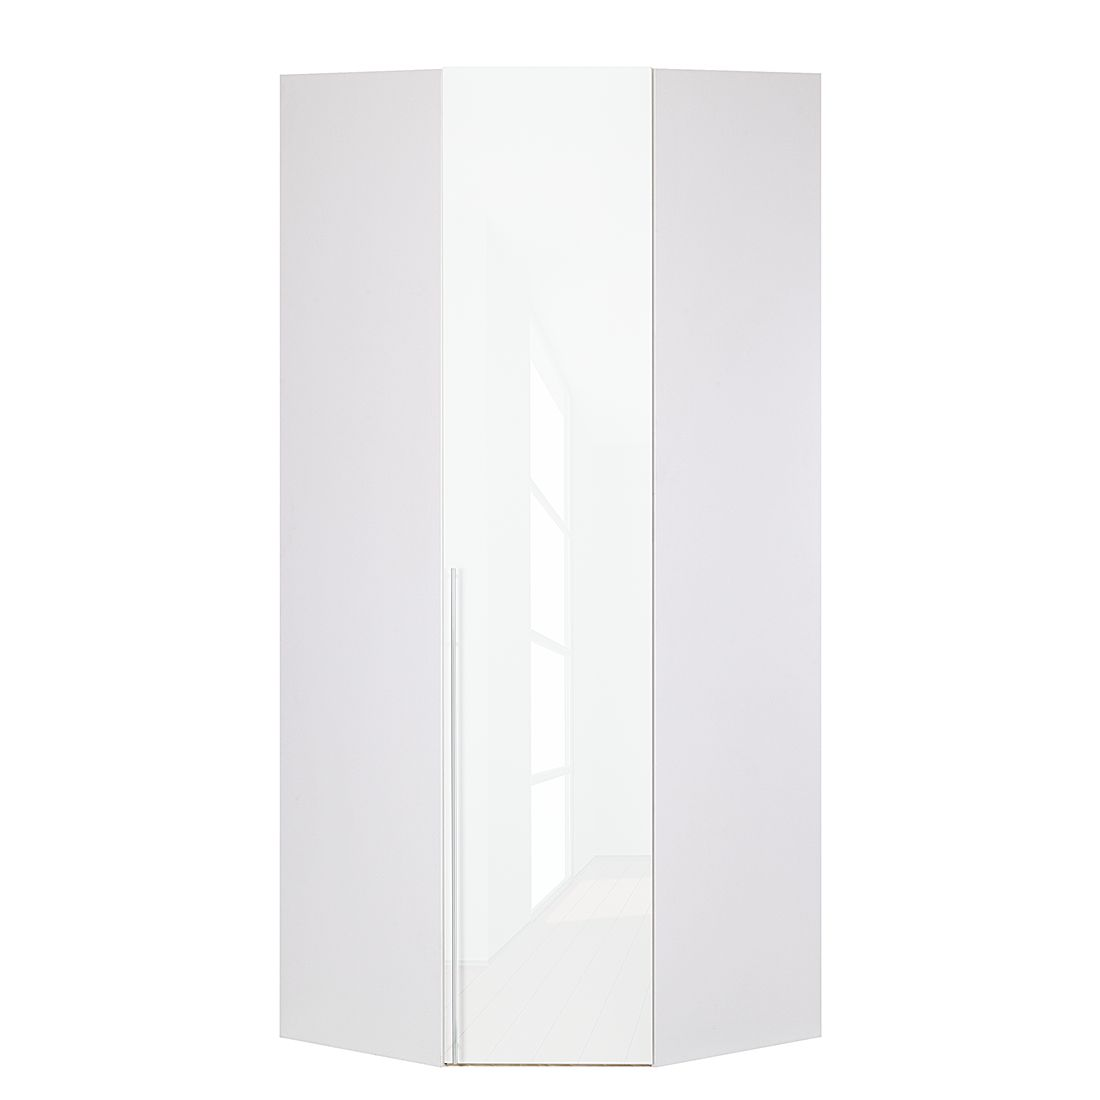 Armoire d'angle Brooklyn VI - Blanc polaire / Vernis blanc - 216 cm, Express Möbel